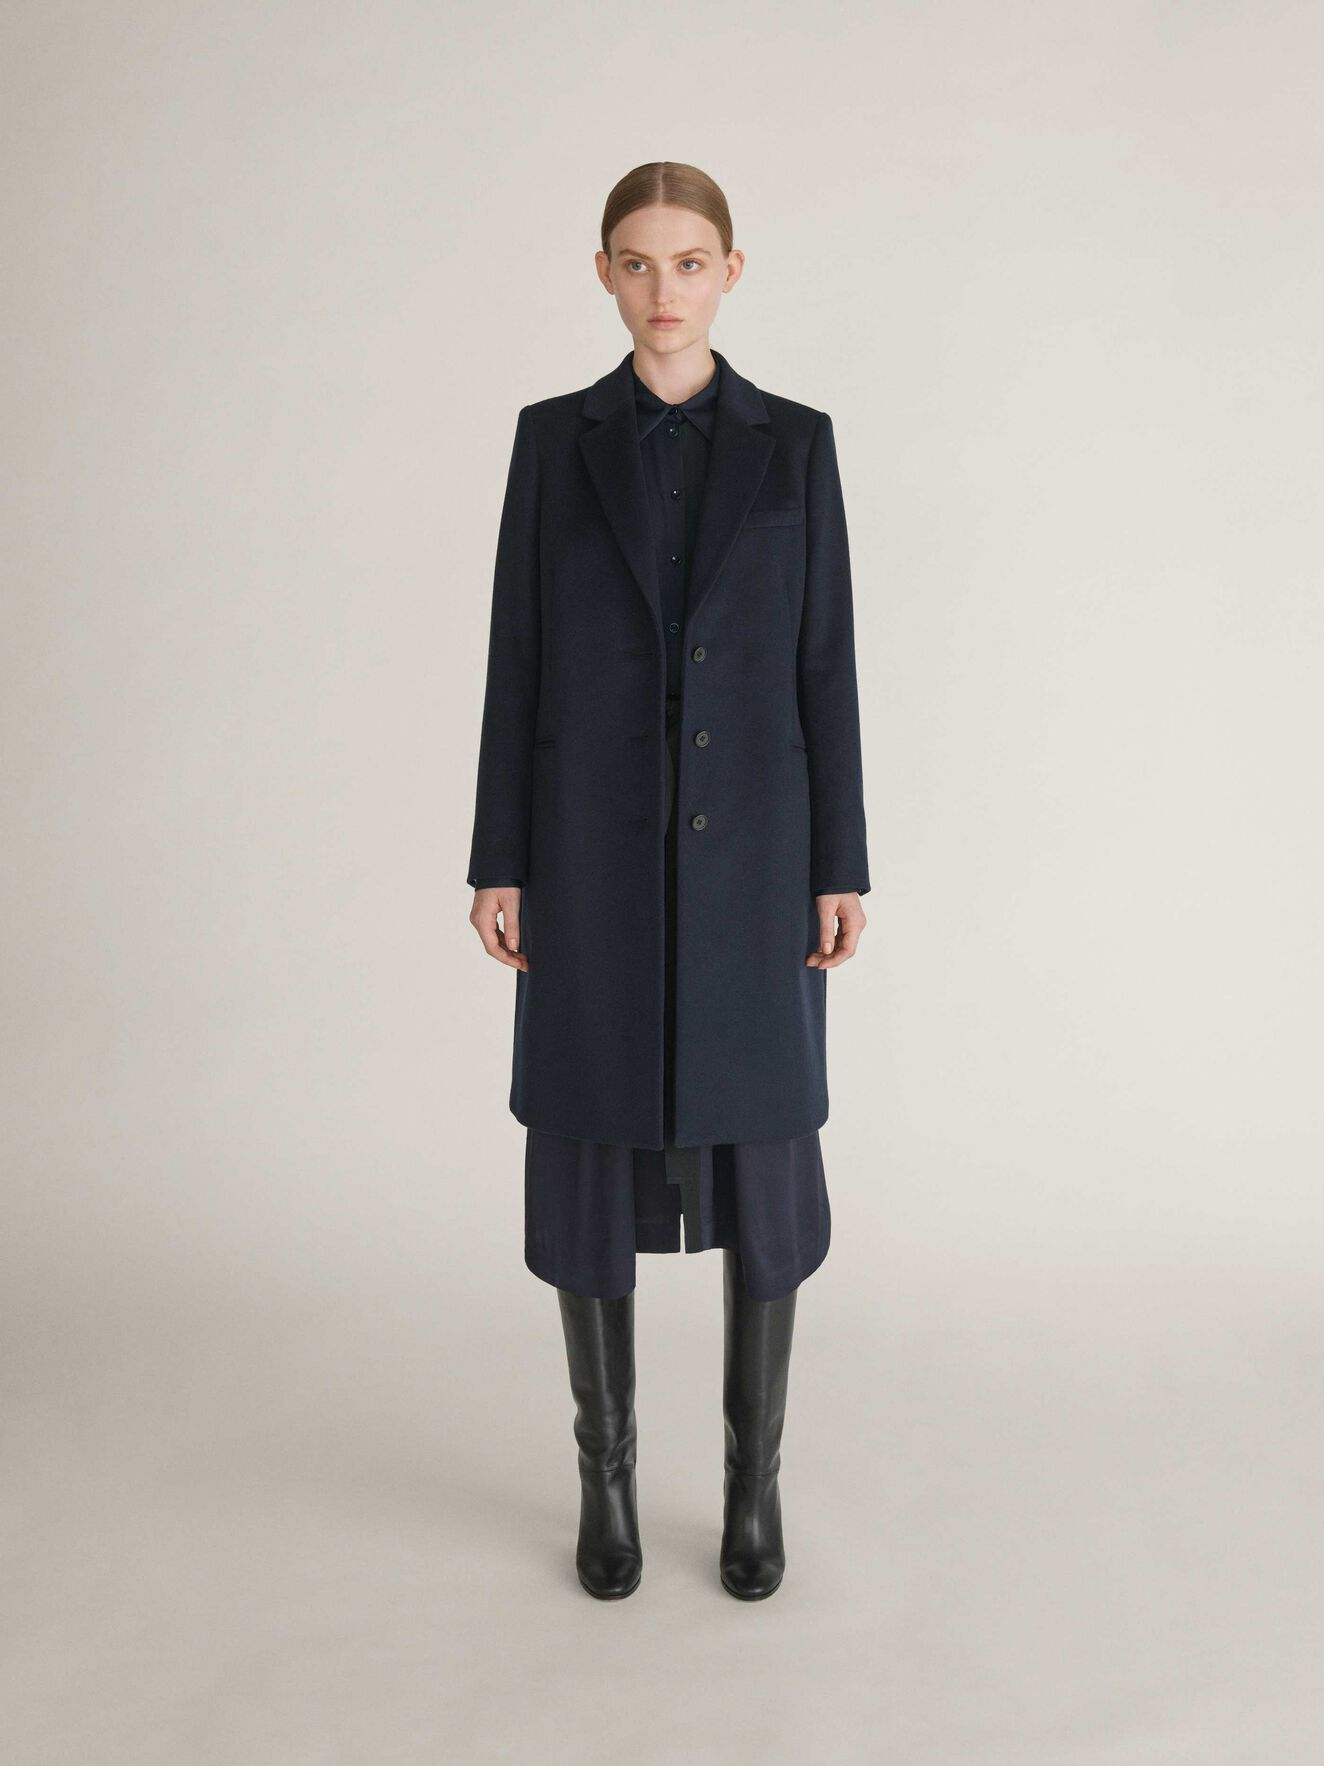 Cianne Coat in Light Ink from Tiger of Sweden